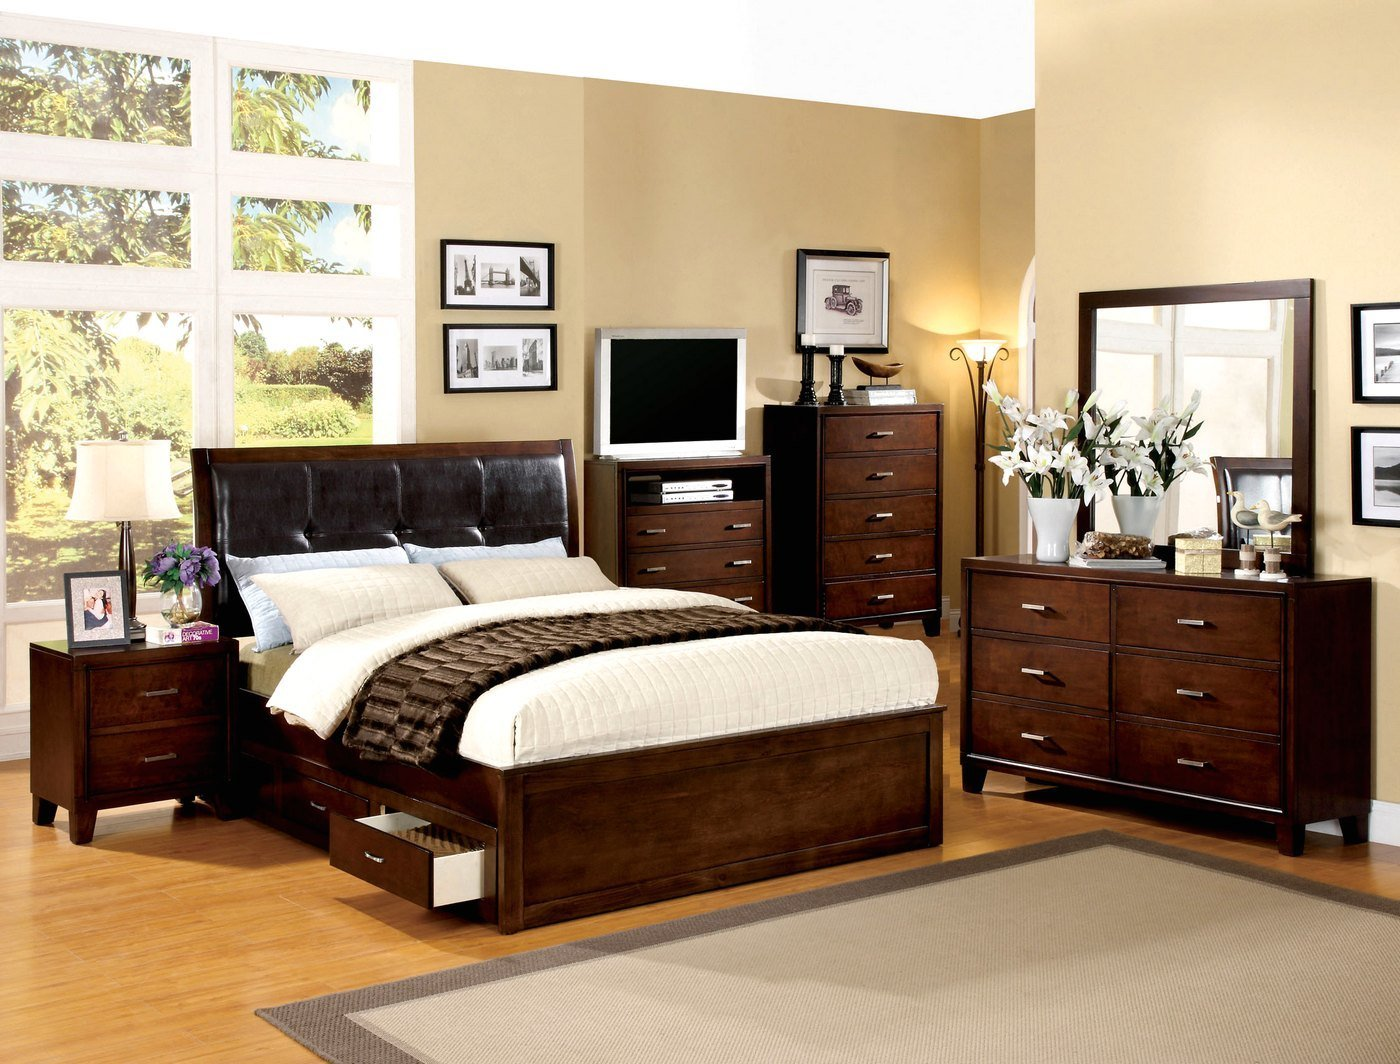 Best Enrico Iv Contemporary Brown Cherry Platform Storage Bedroom Set With Padded Leatherette With Pictures